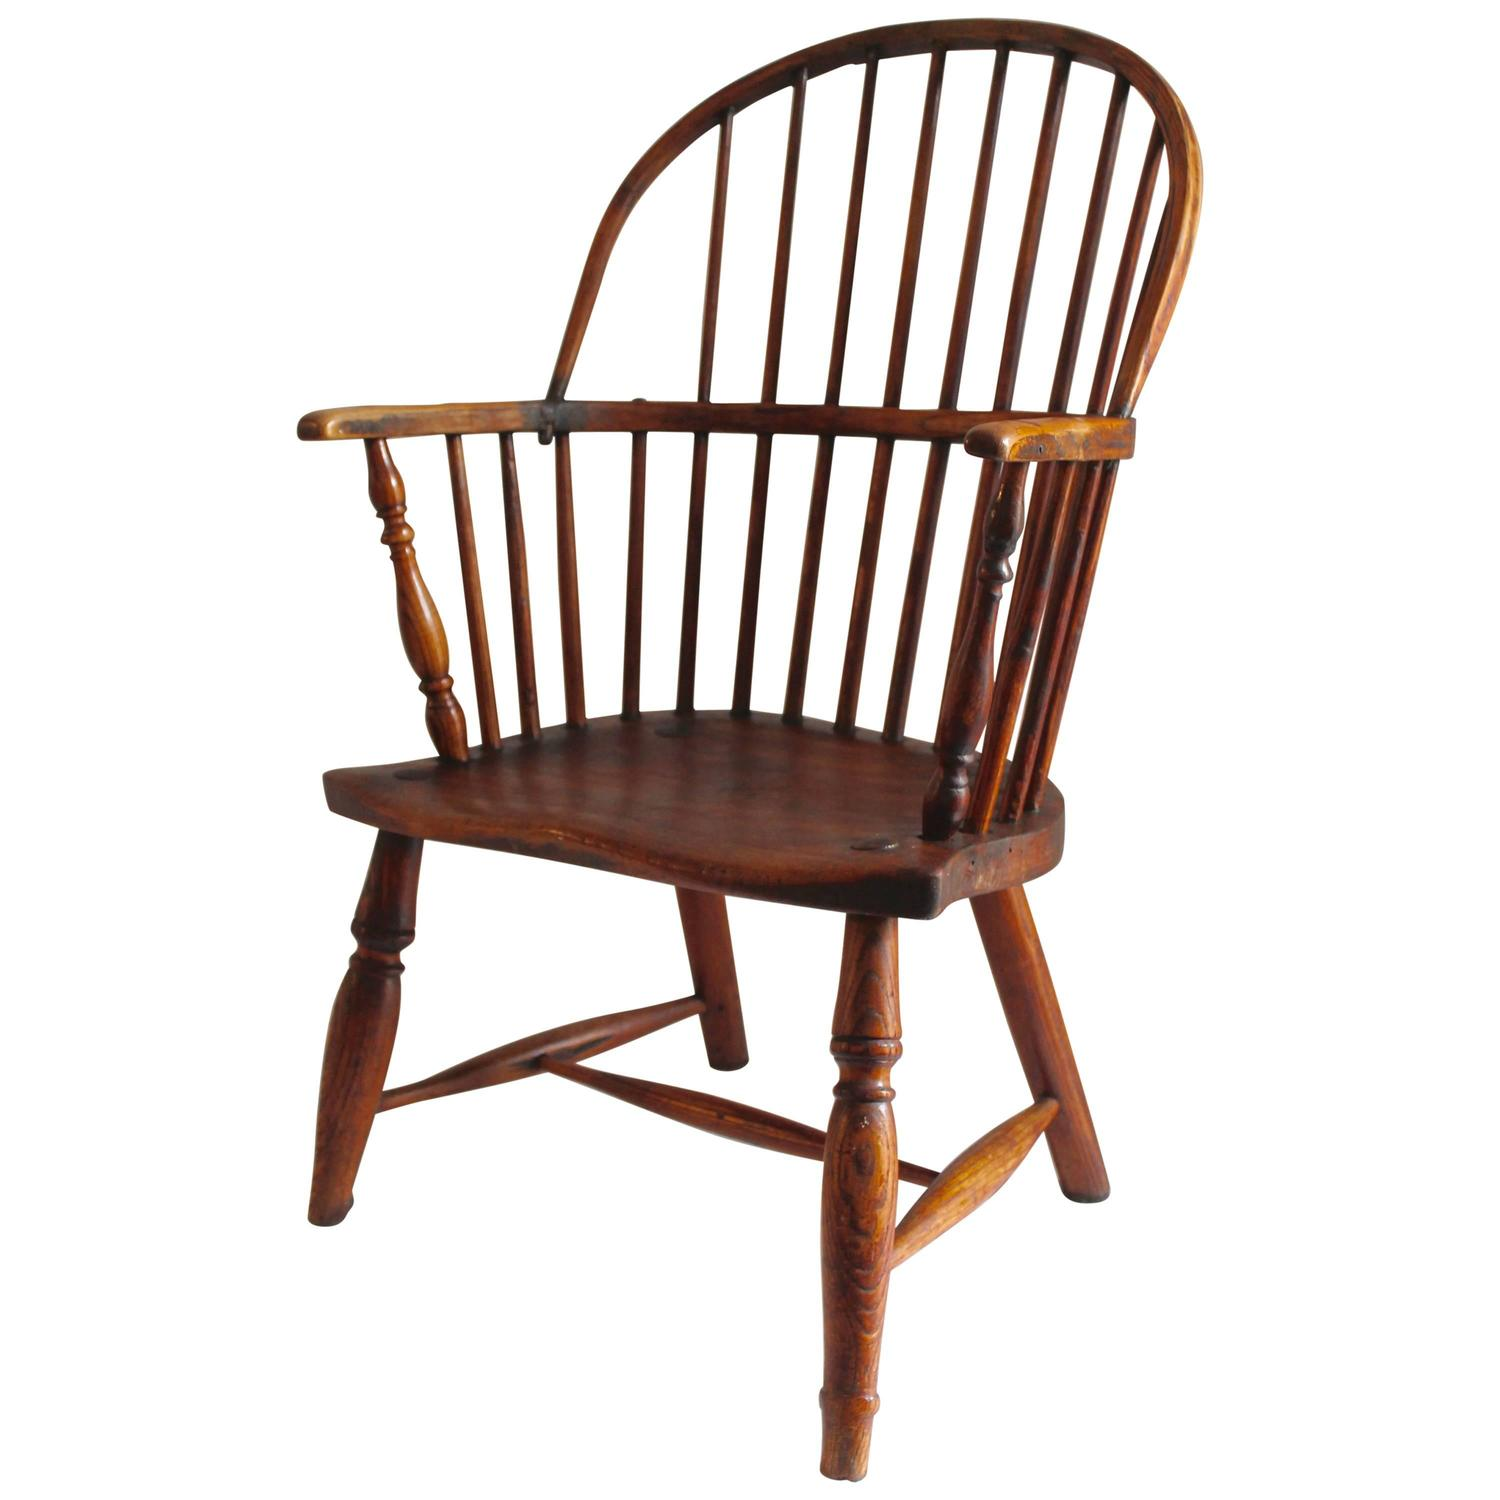 Antique and Vintage Windsor Chairs 141 For Sale at 1stdibs